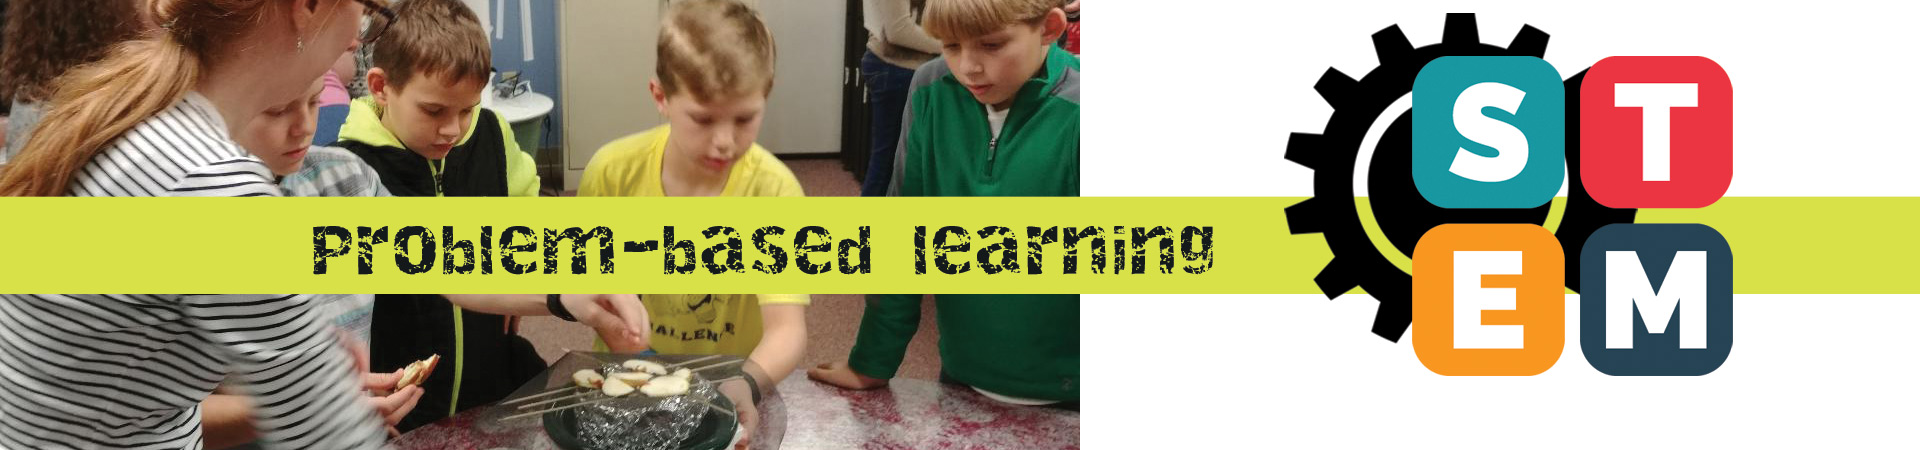 Stem Problem Based Learning